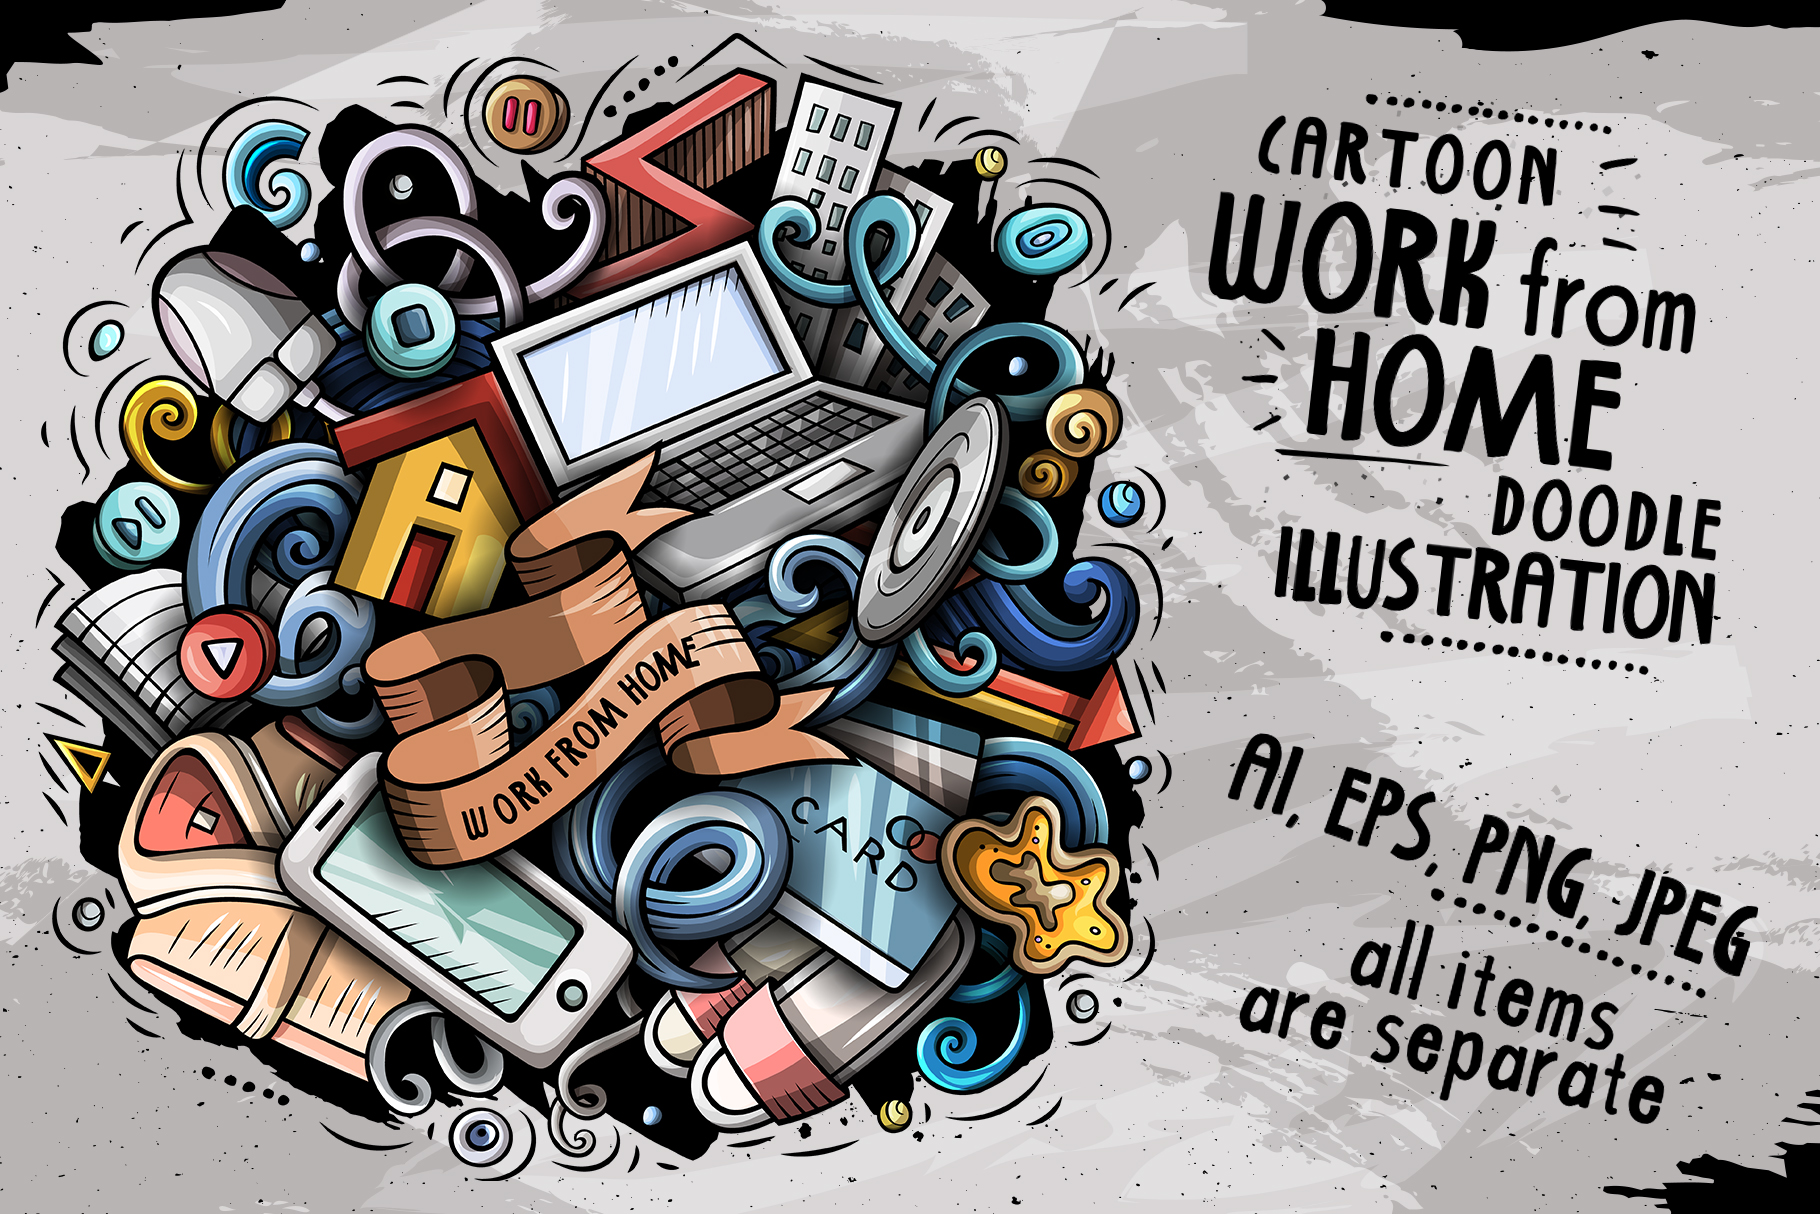 Download Free Work From Home Cartoon Illustration Graphic By Balabolka for Cricut Explore, Silhouette and other cutting machines.